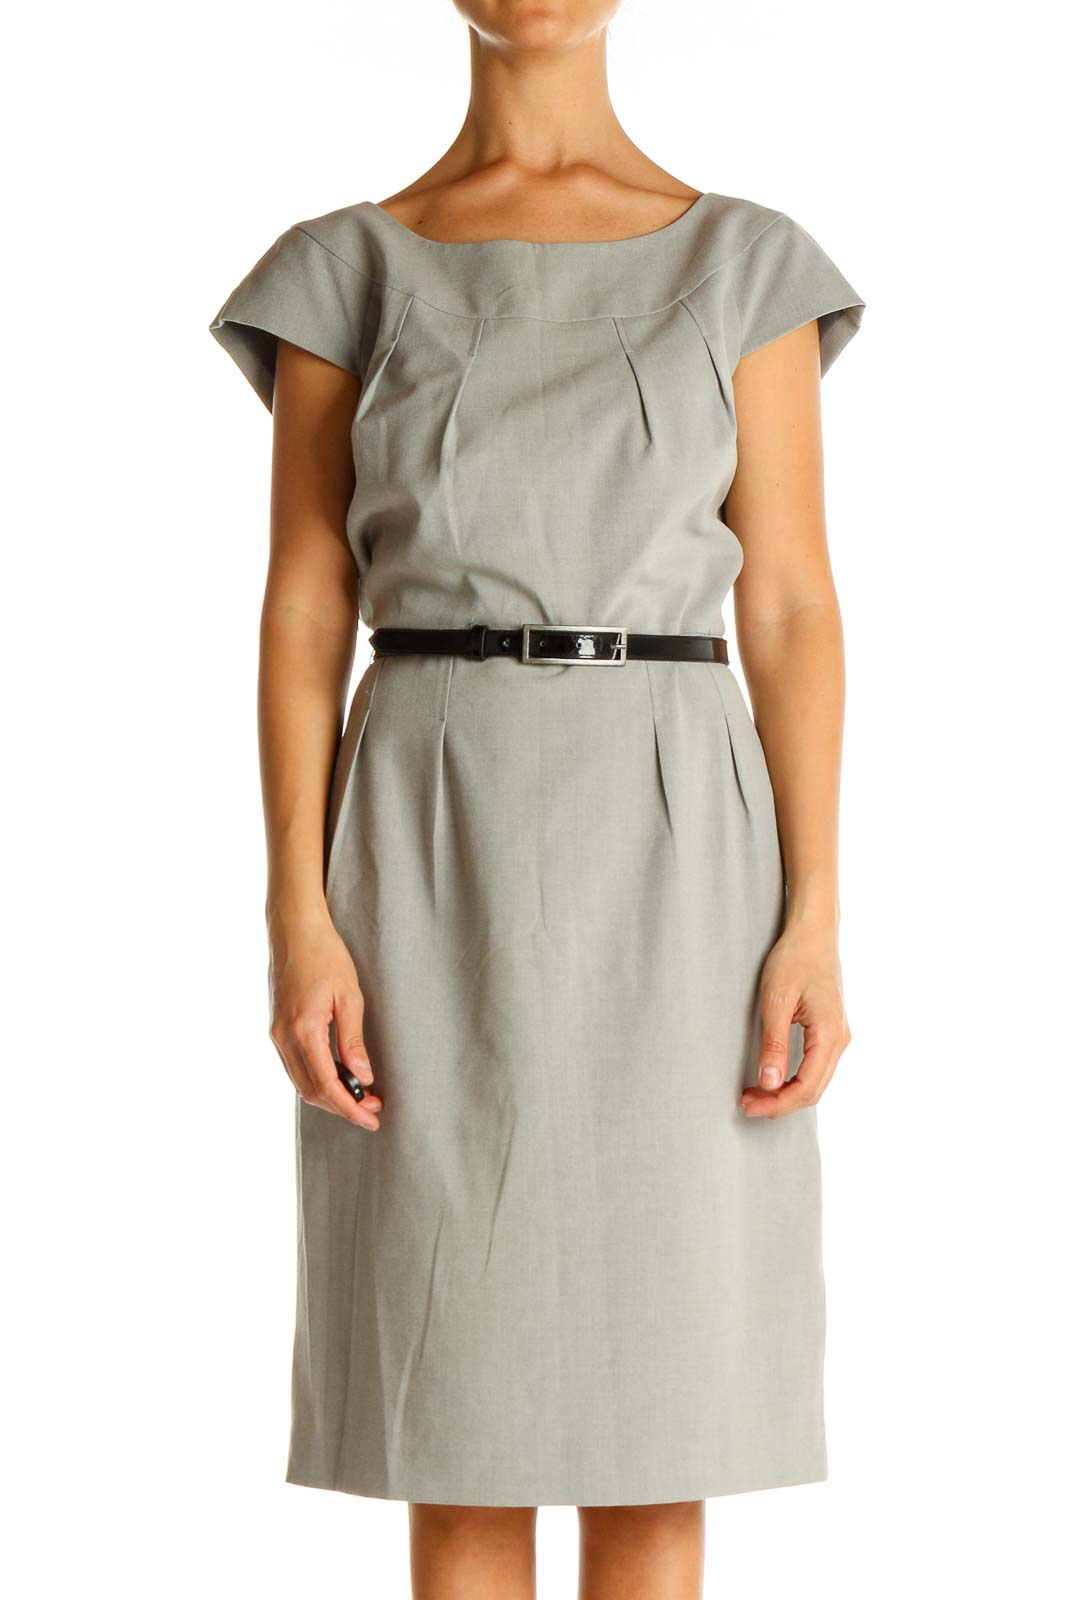 Gray Solid Work Shift Dress Front